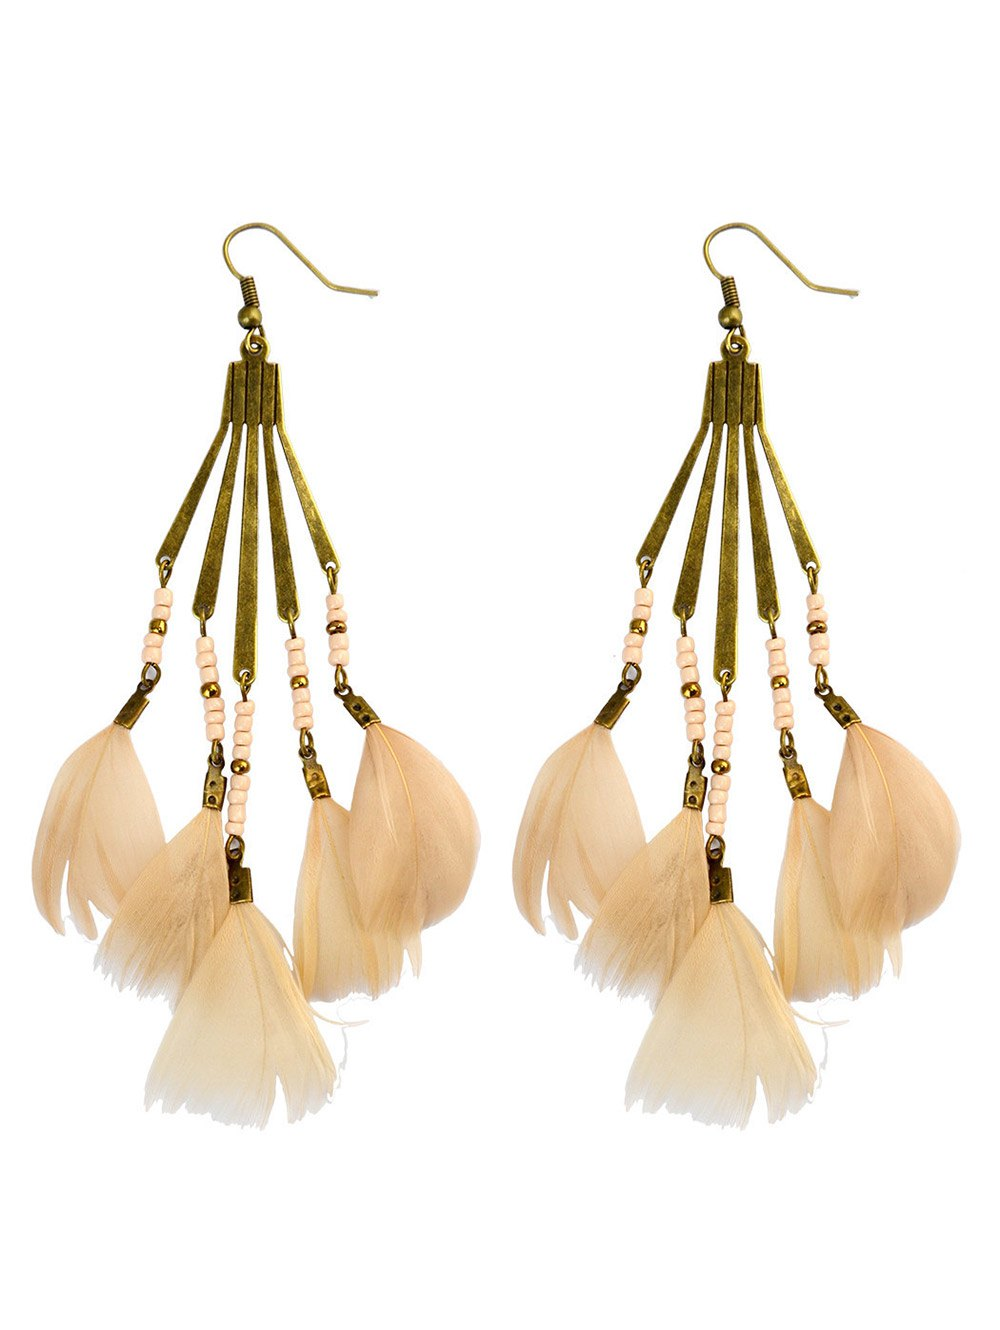 Bohemian Beads Feather Earrings